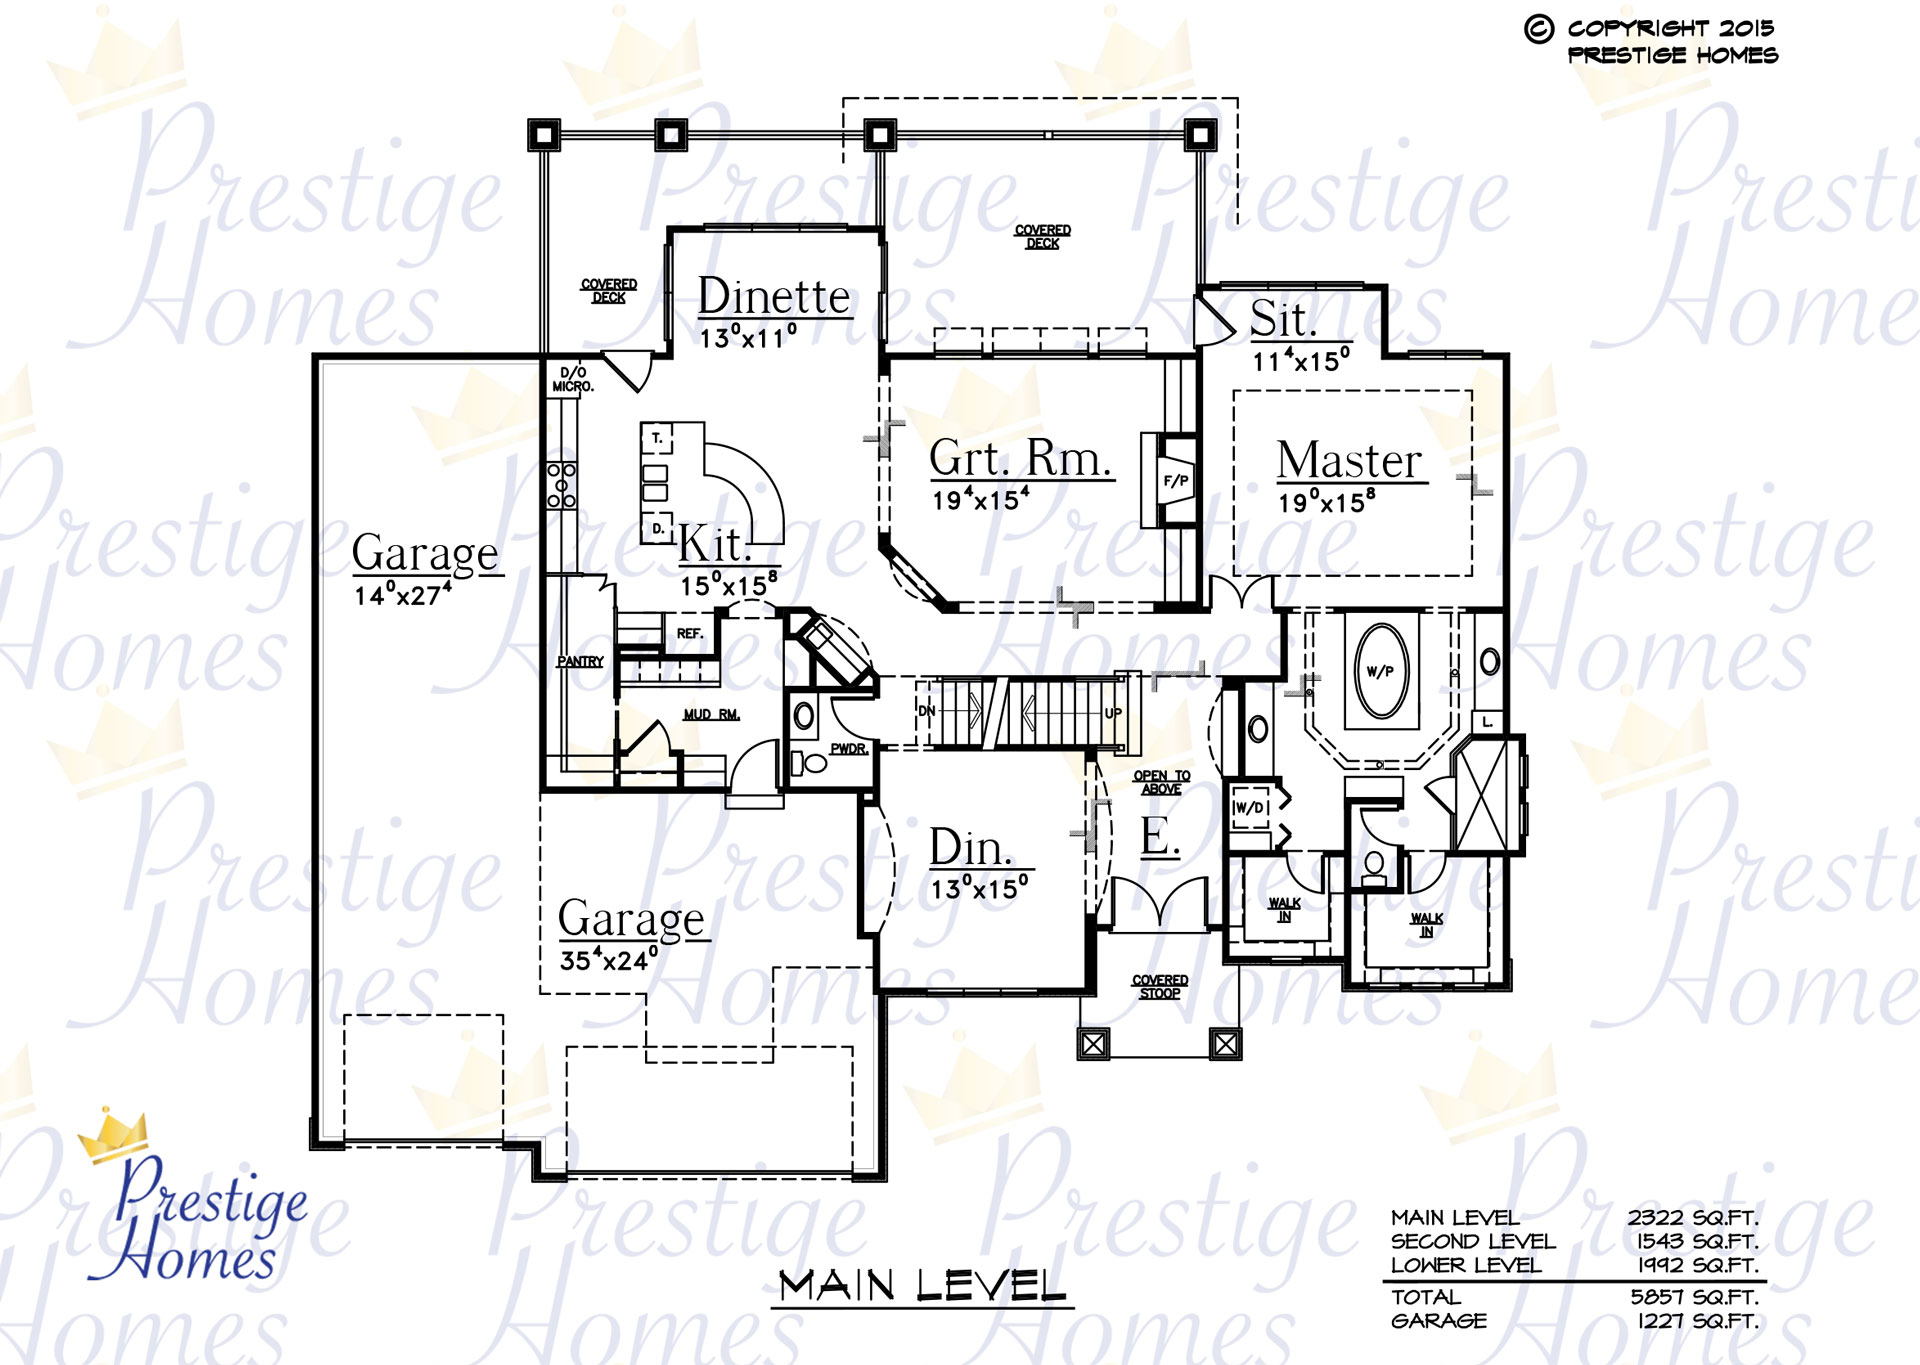 Prestige Homes - Floor Plan - Bella SOD - Main